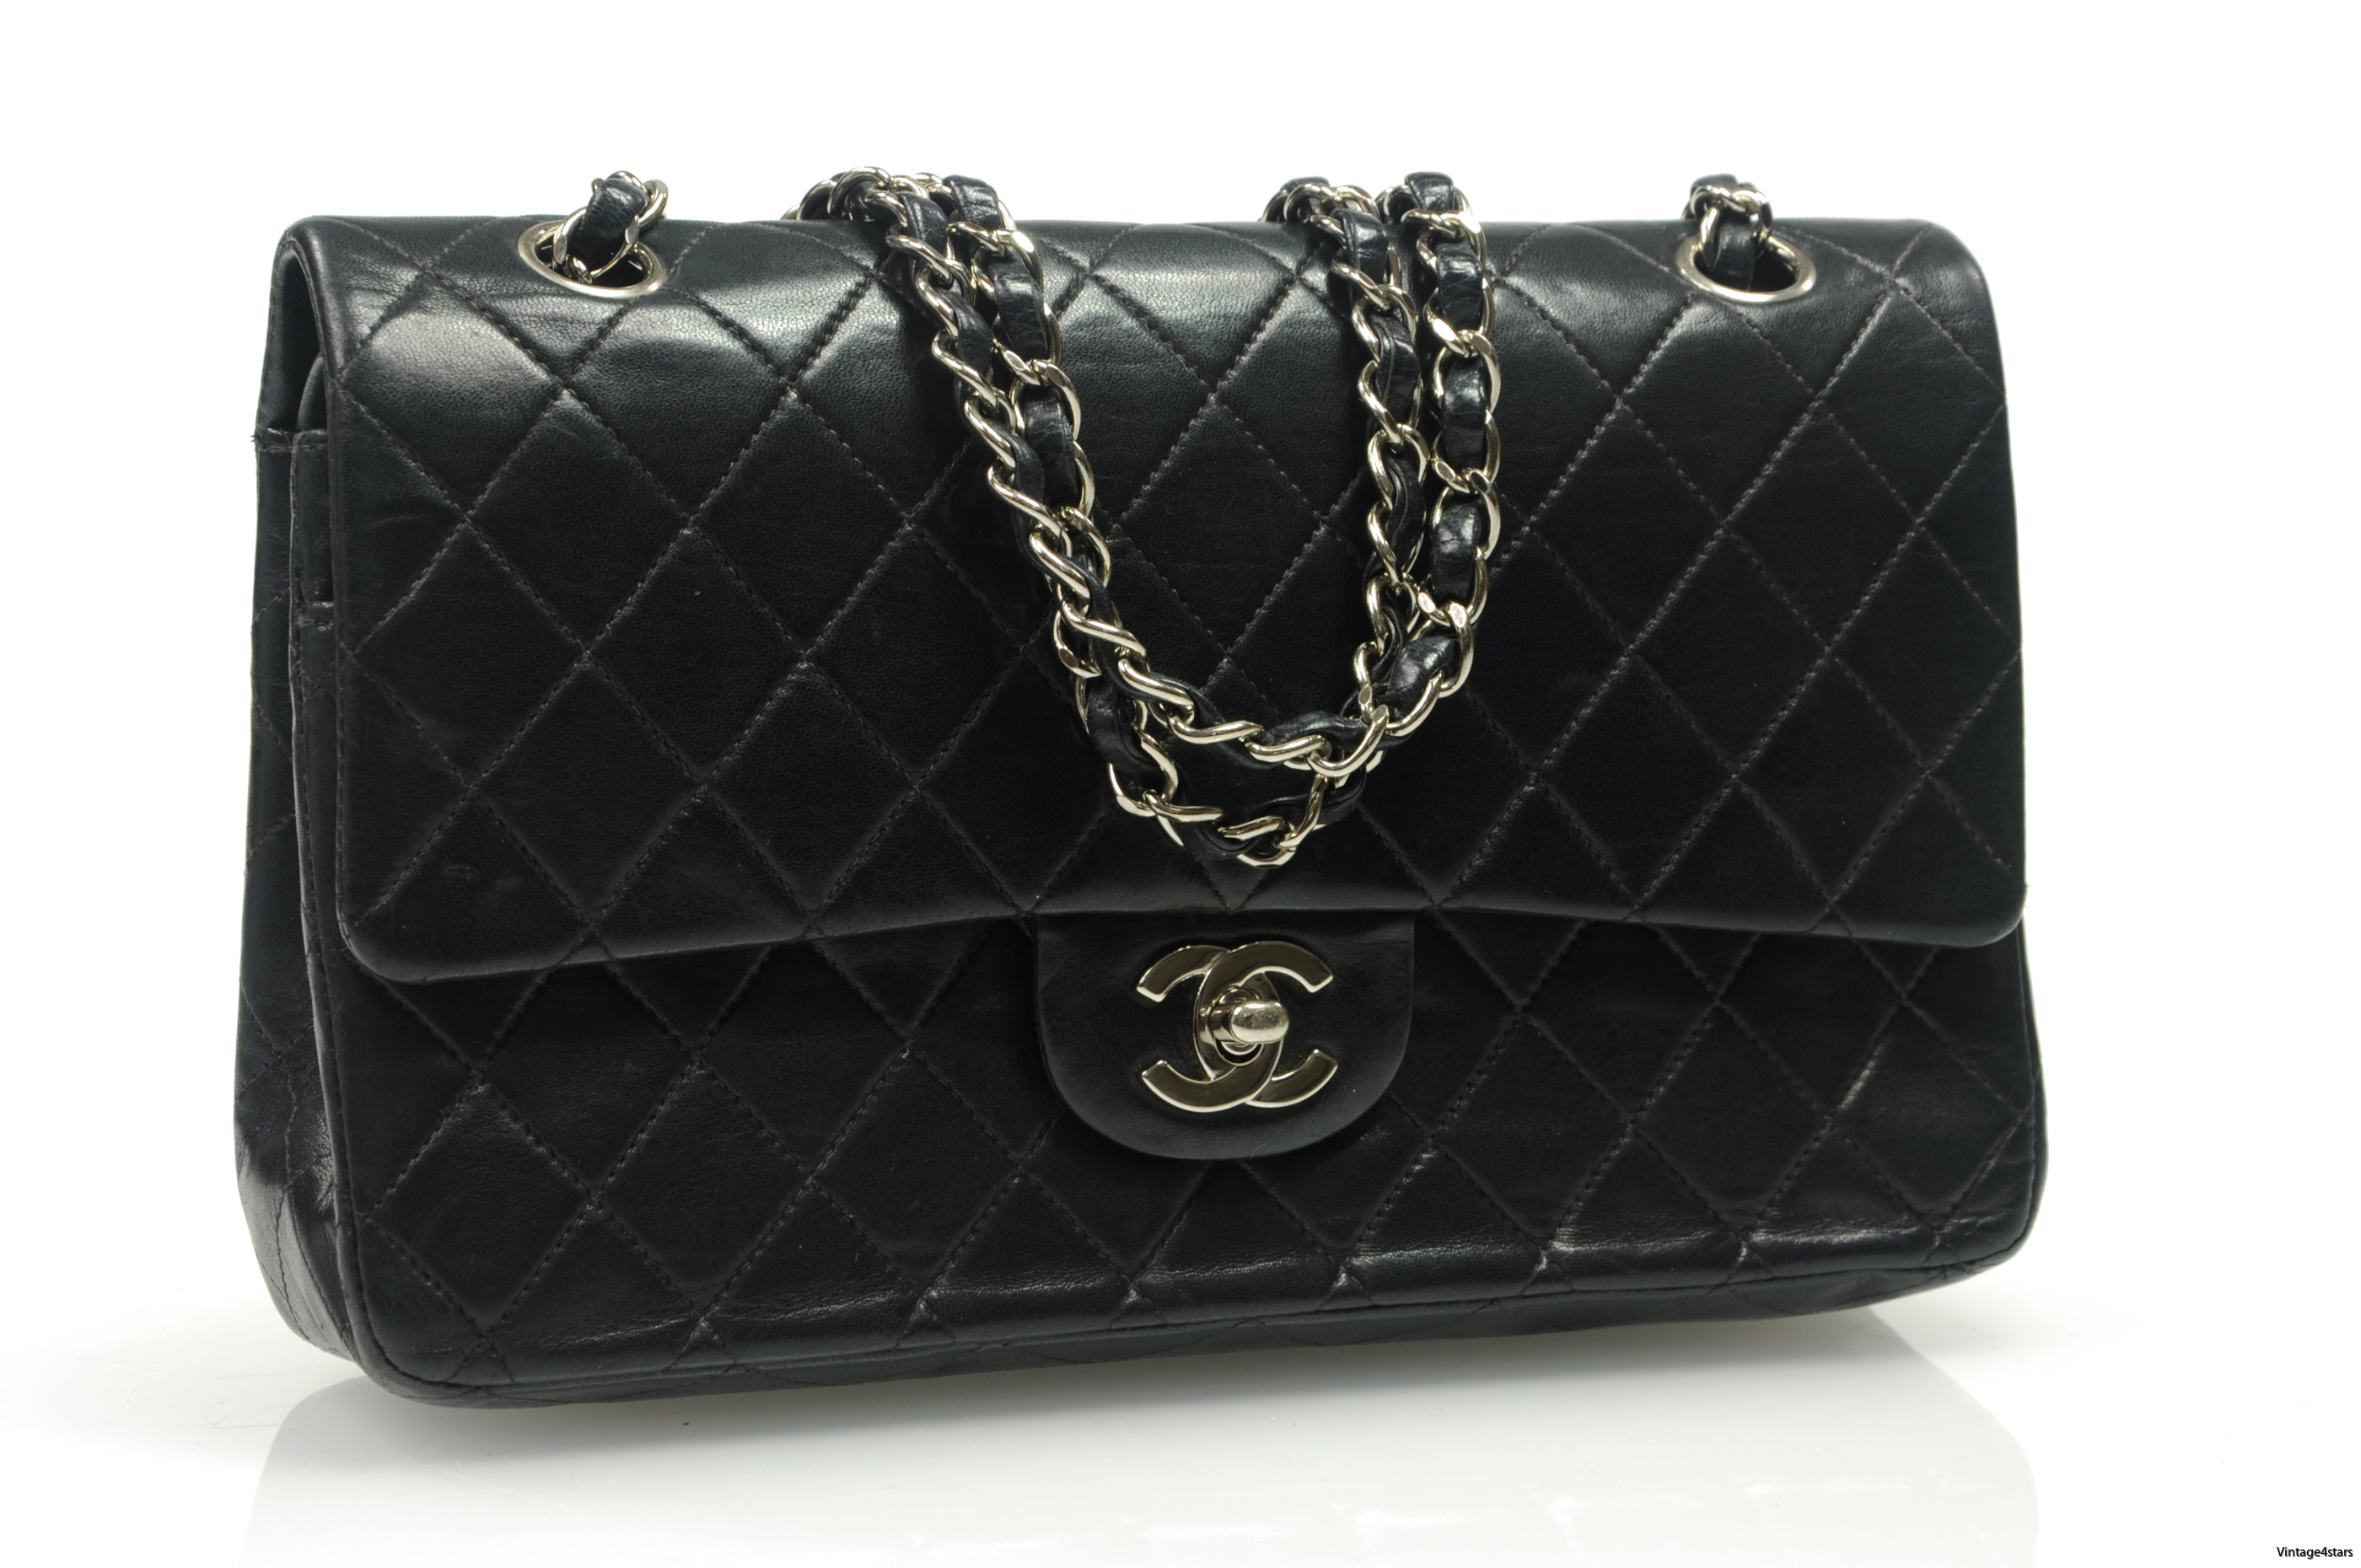 CHANEL Double Flap SHW 2